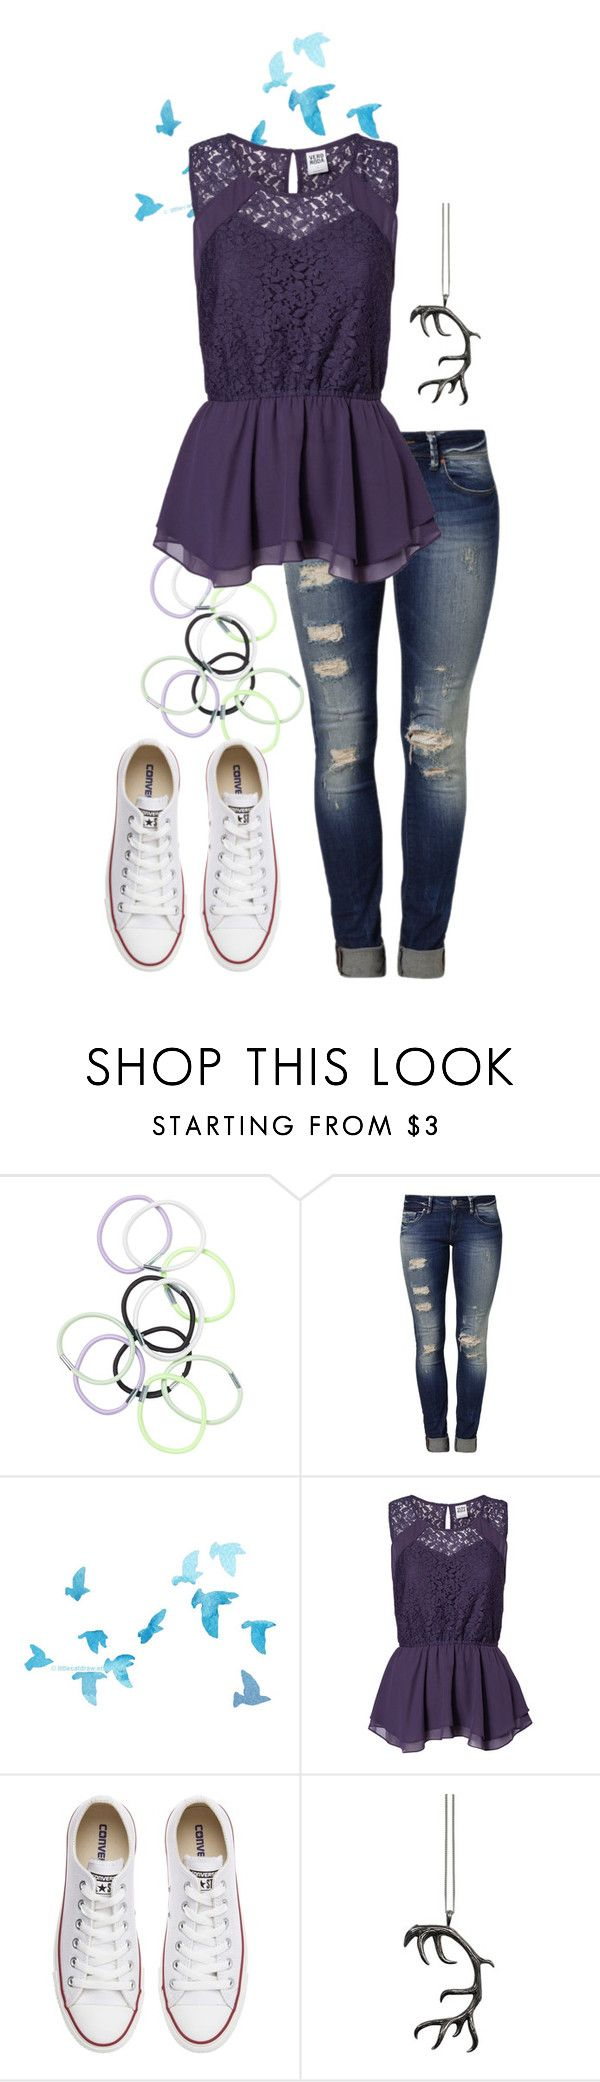 """""""Believe in yourself a little more"""" by bethanunny ❤ liked on Polyvore featuring Monki, Mavi, Vero Moda, Converse and Justine Brooks"""